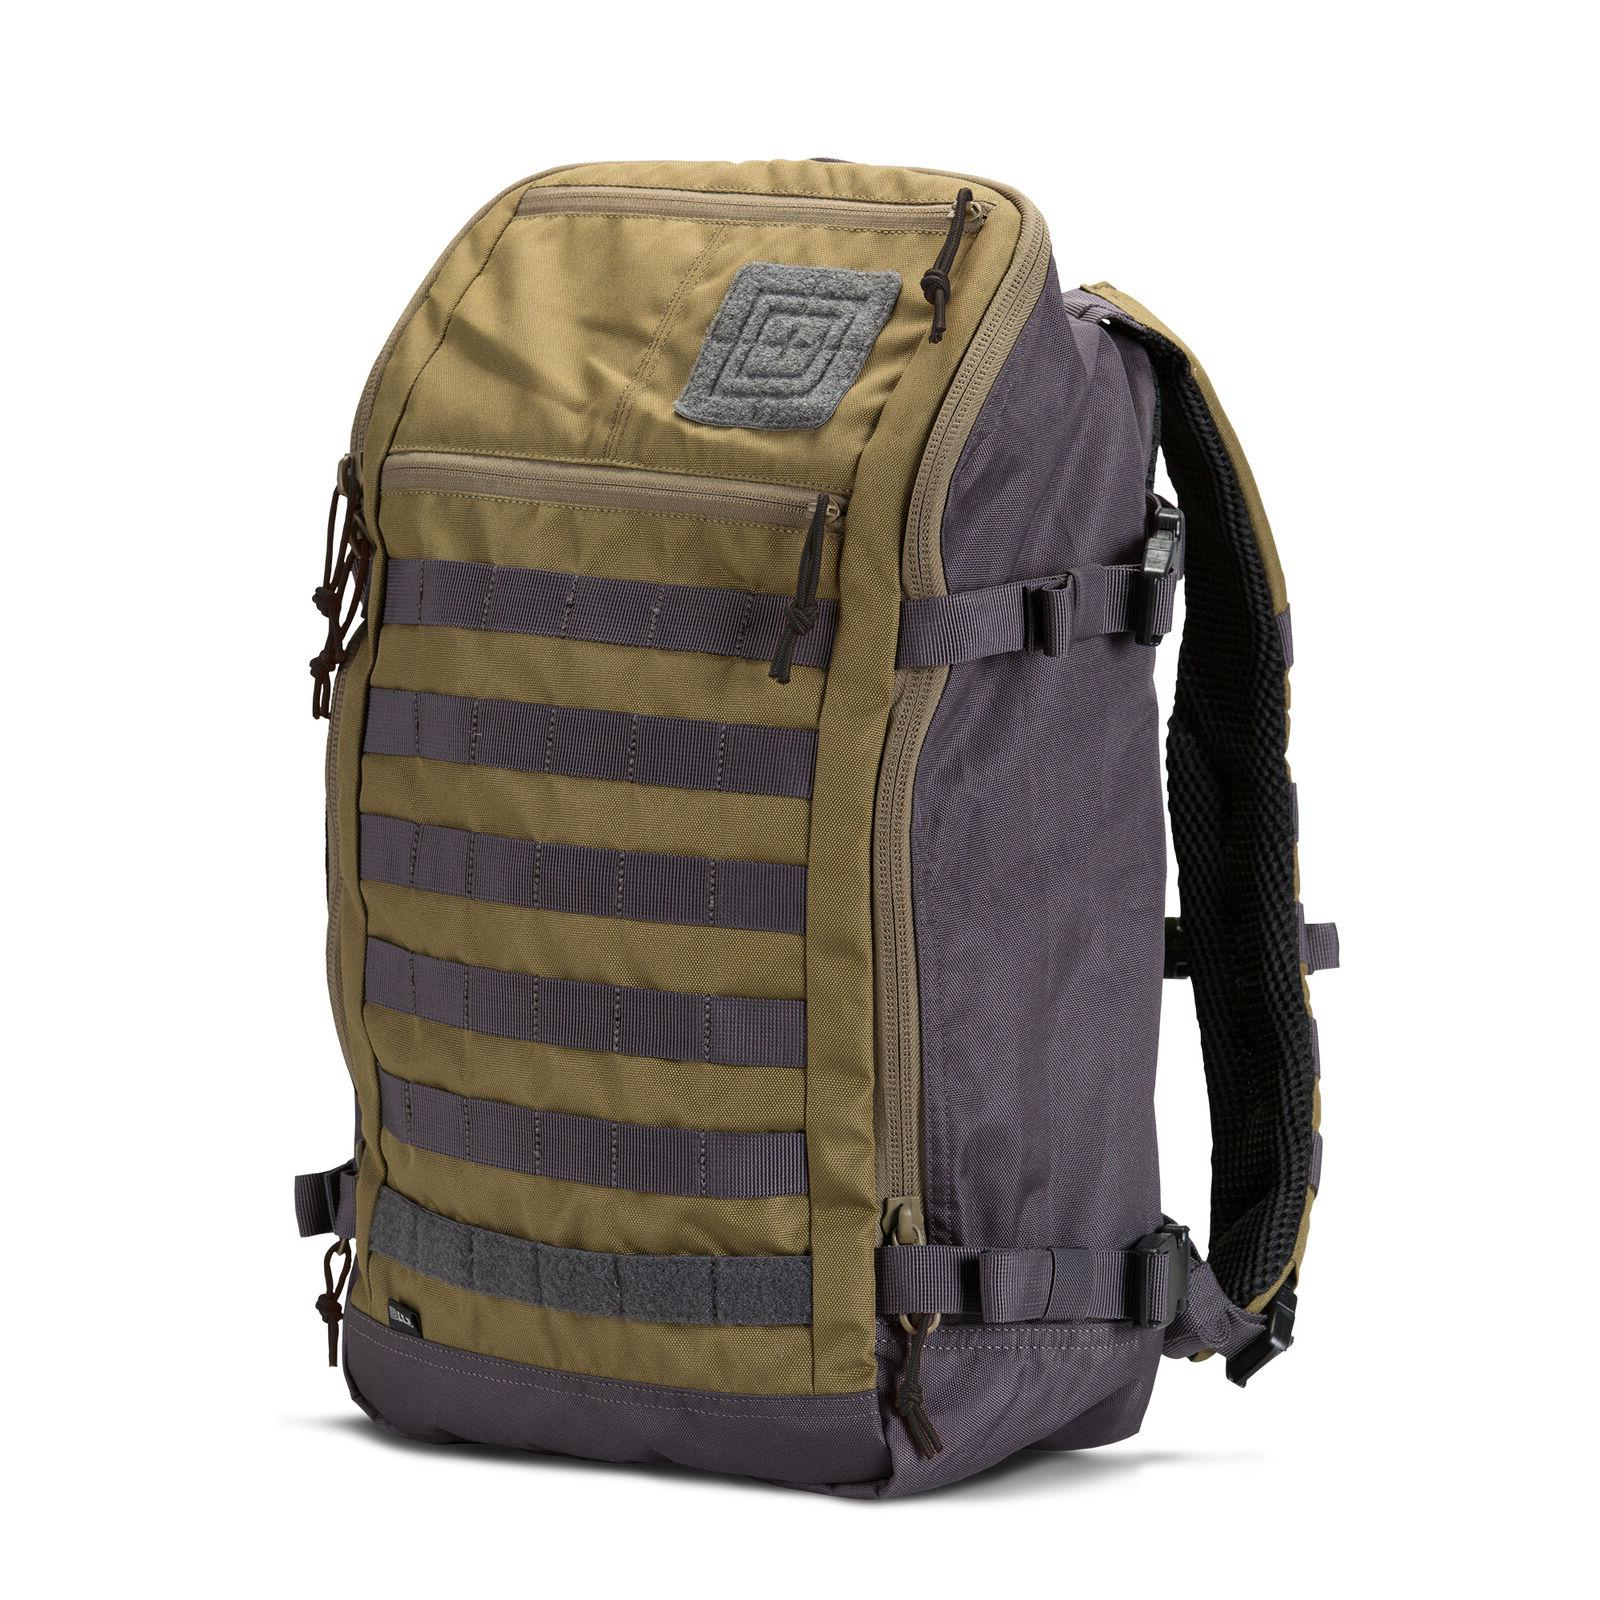 5.11 / Fast Four Zipper Bag Laptop Bag Tactical Backpack Out